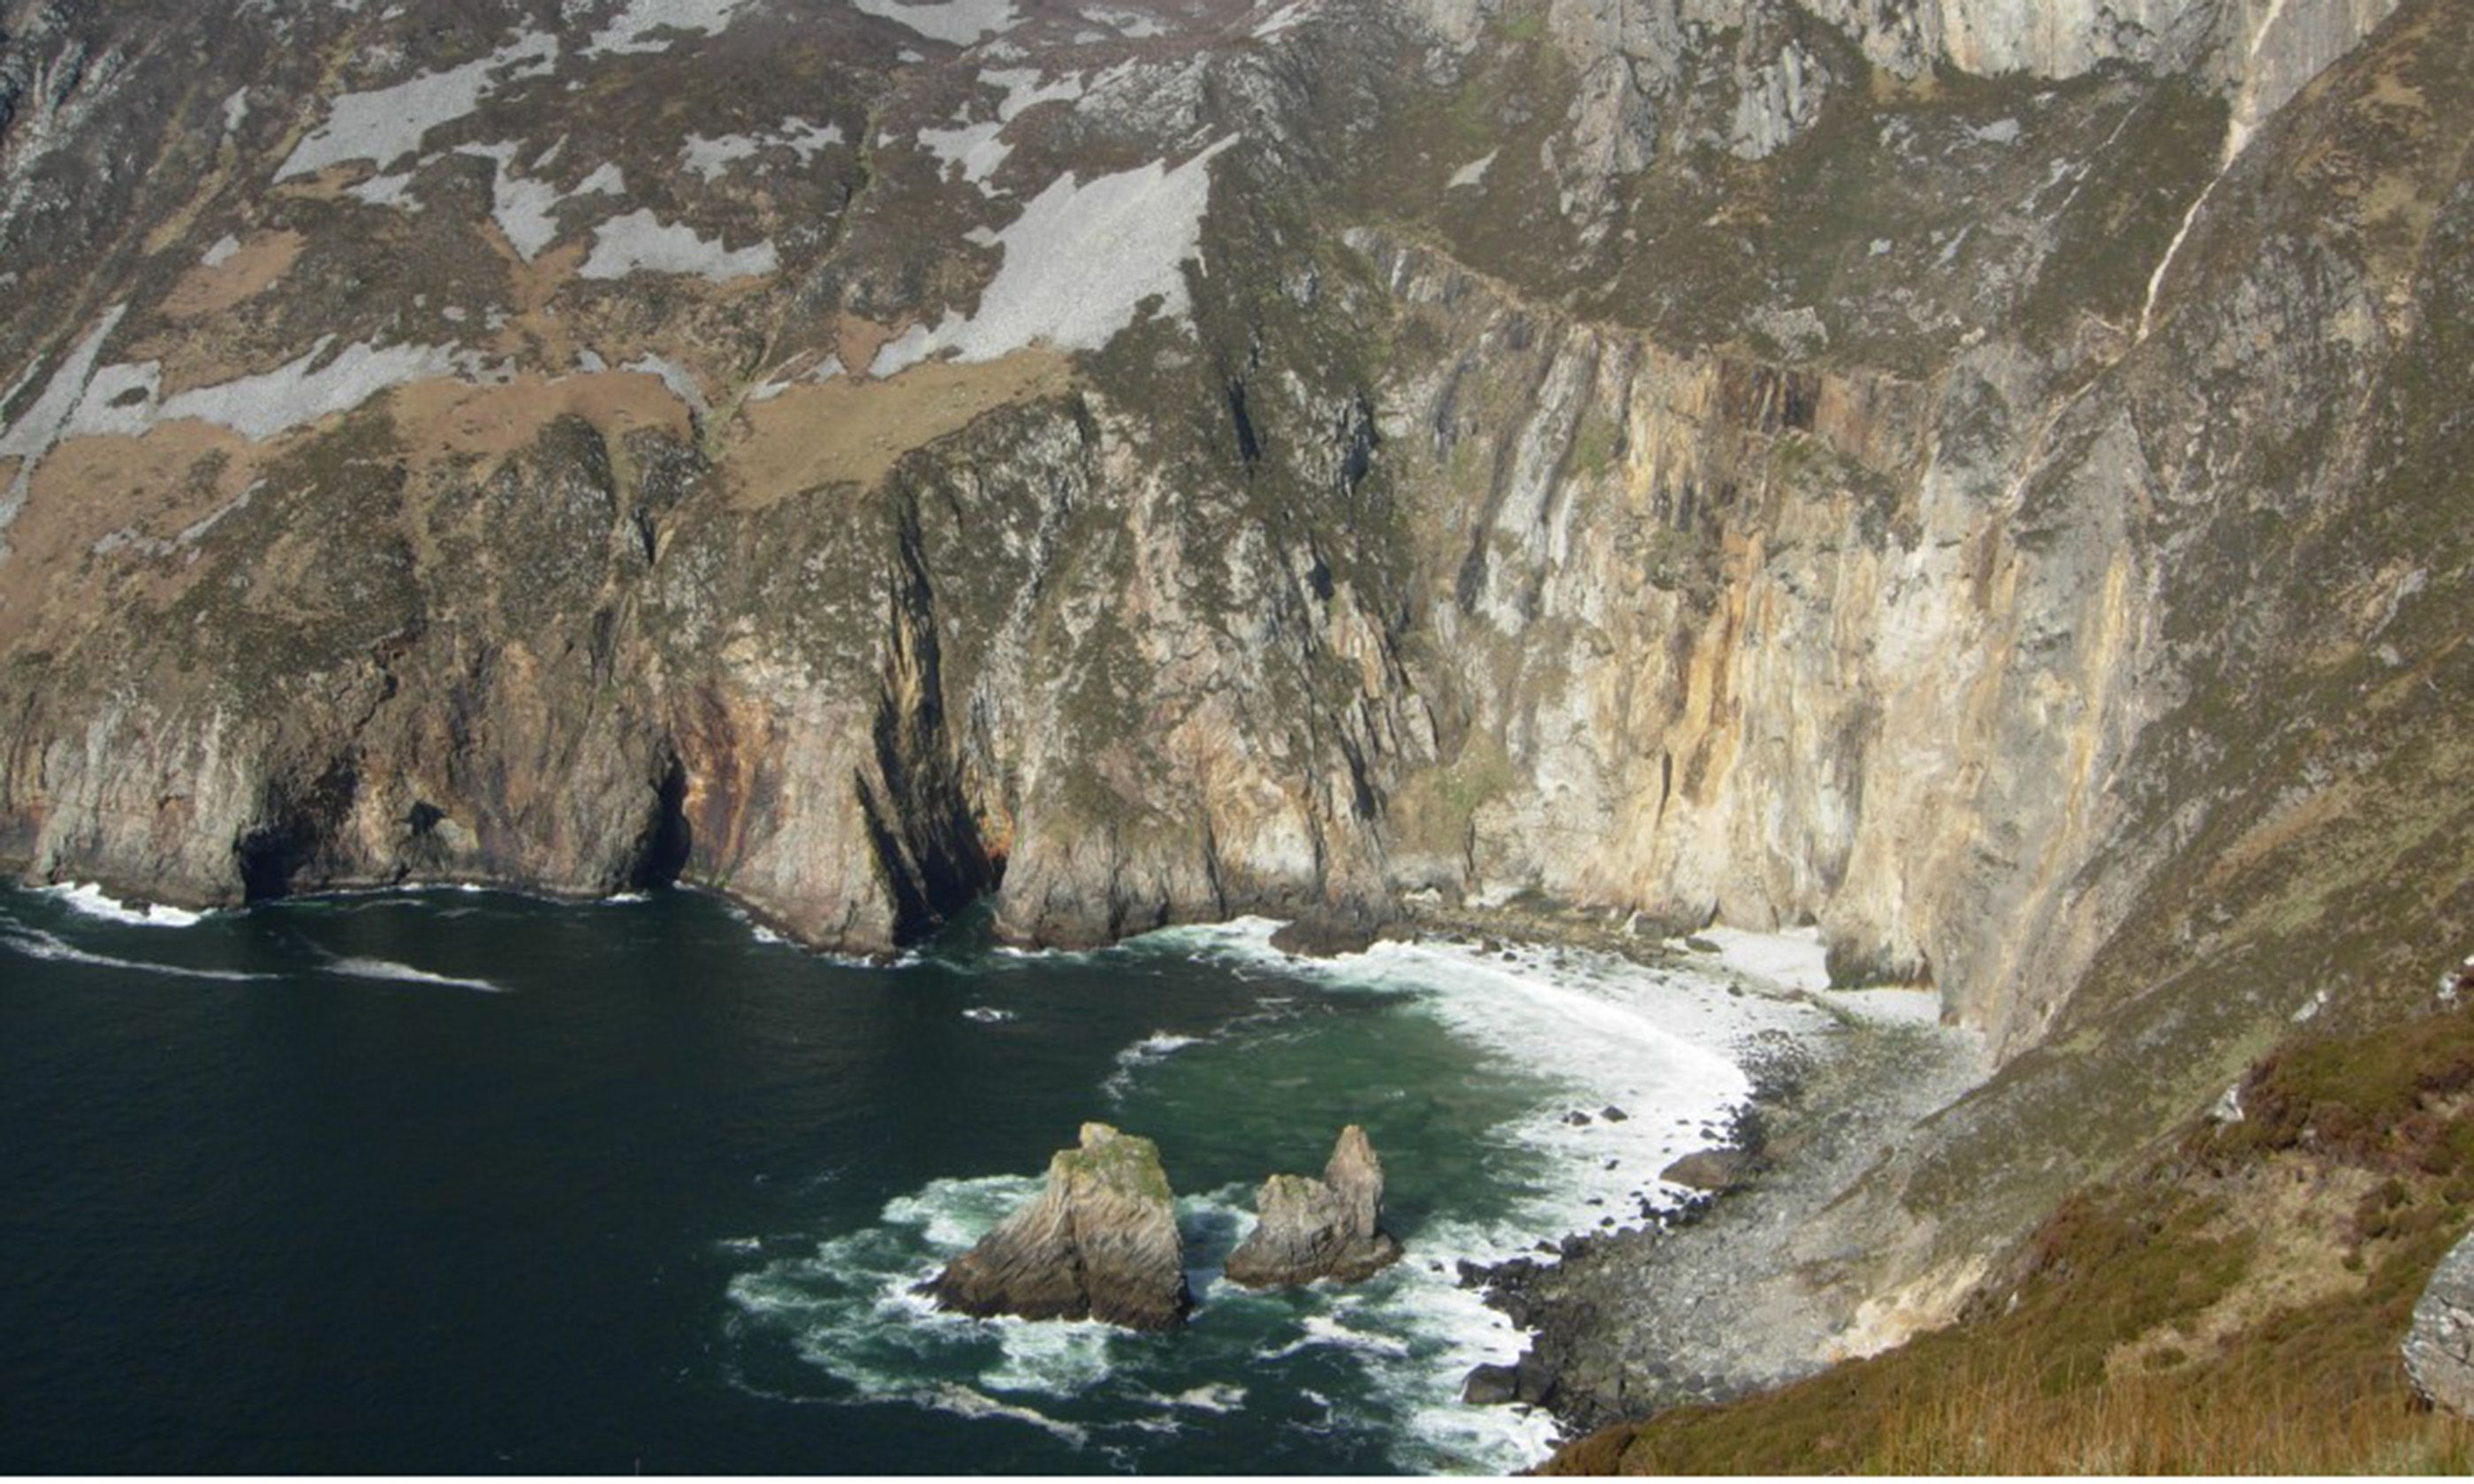 Cliffs of Donegal (FarawayVisions.com)